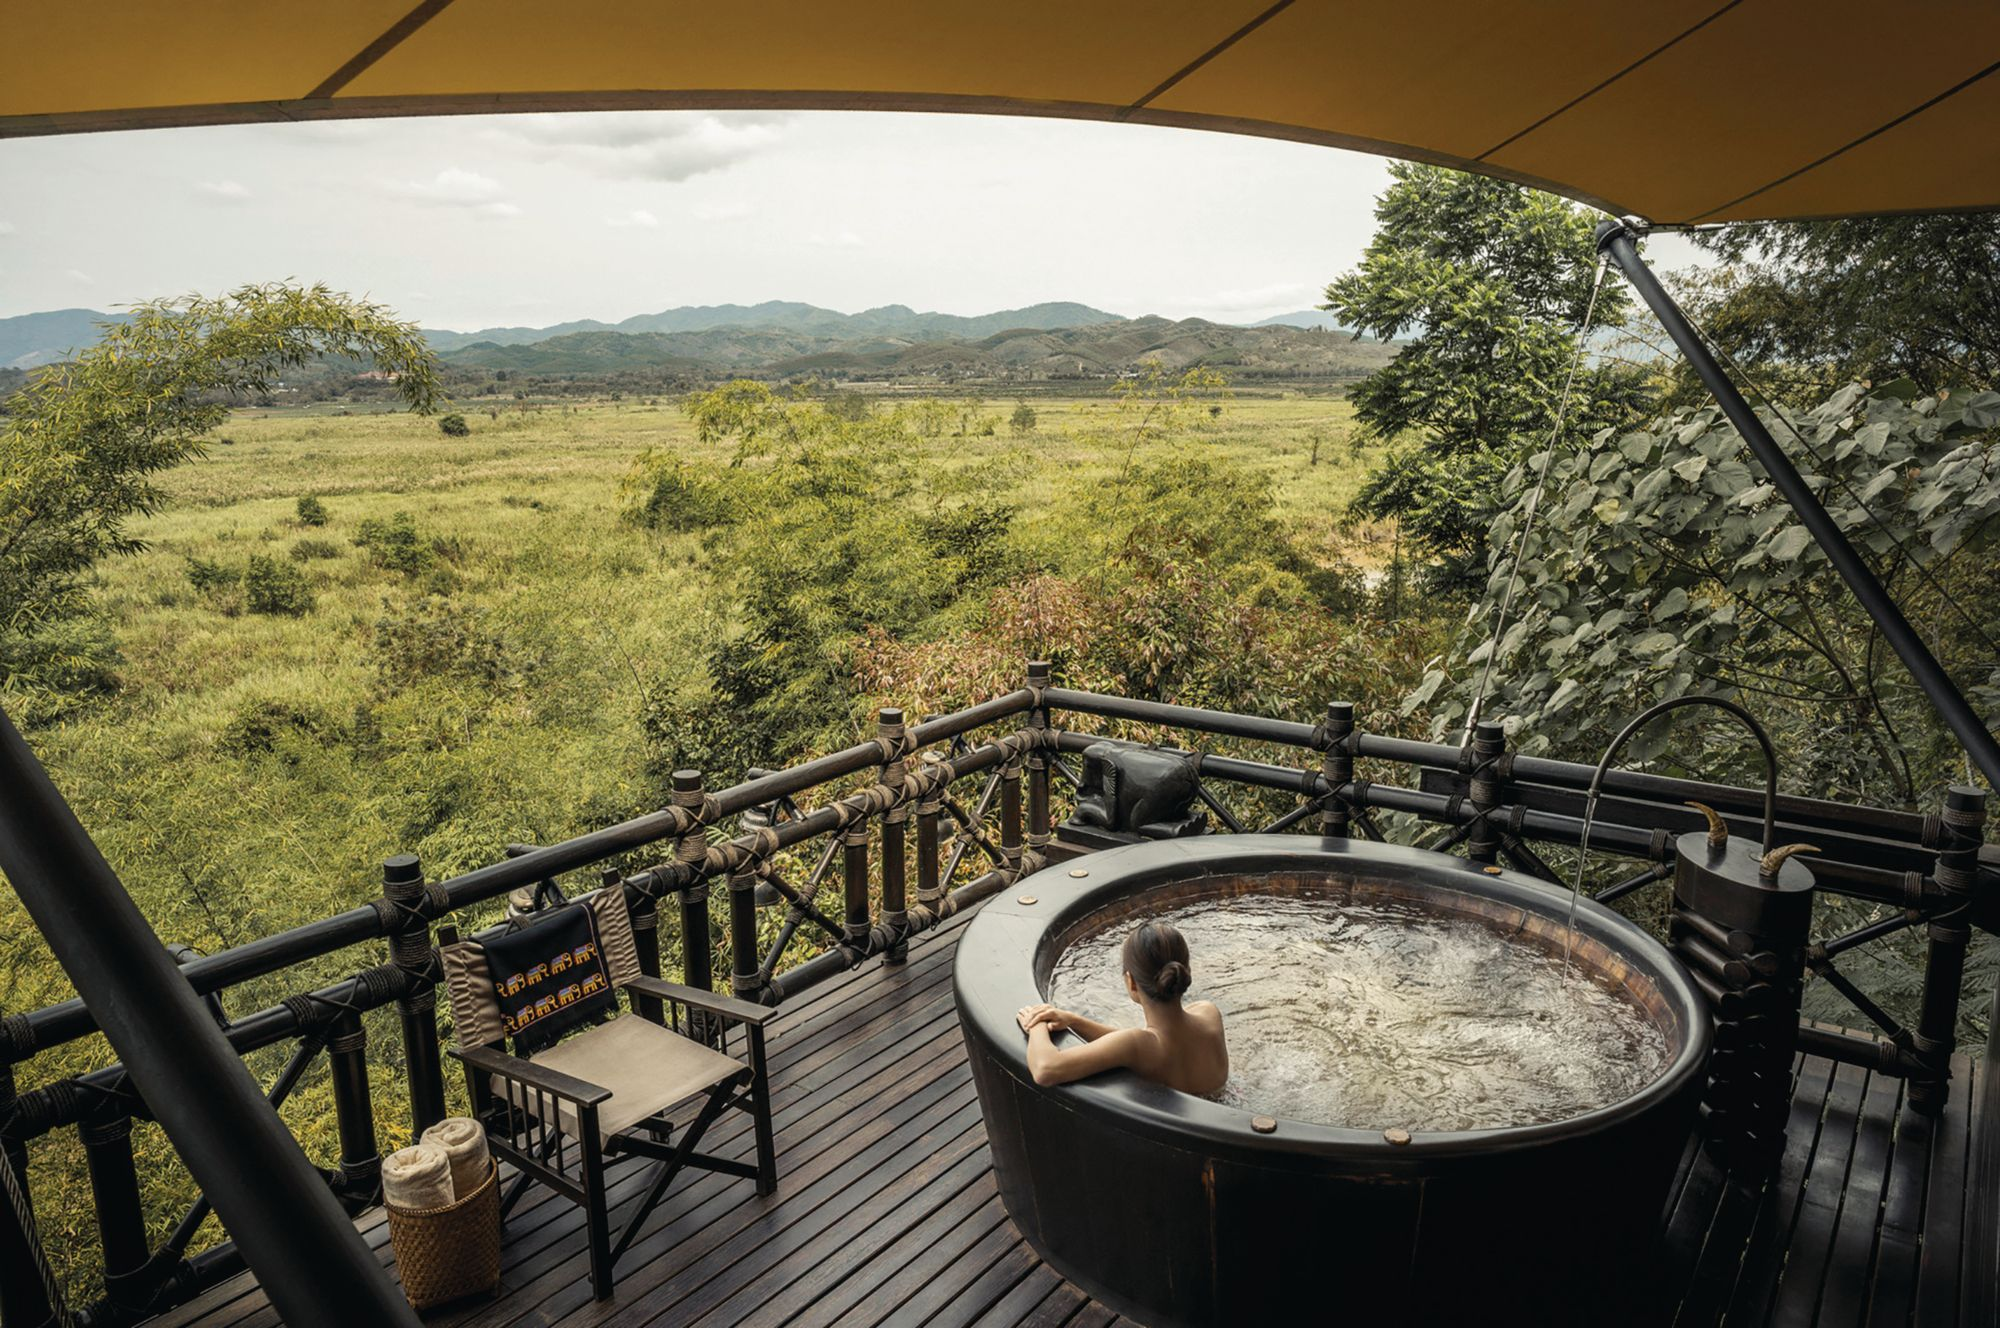 浸泡在Four Seasons Tented Camp Golden Triangle的露台浴盆中放眼原始野性的景色(Photo: Courtesy of Four Seasons)